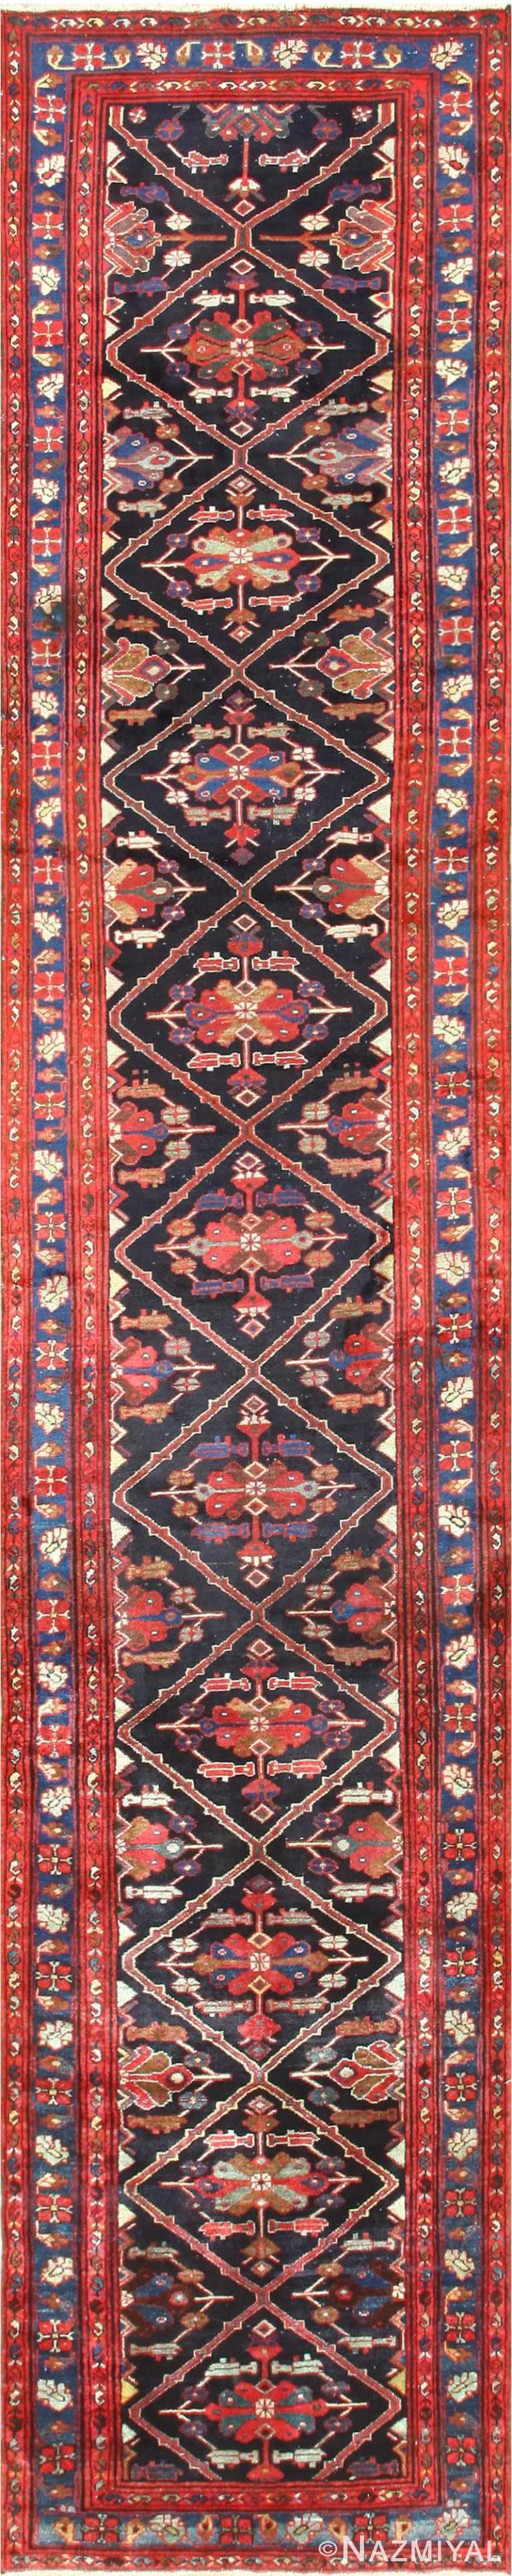 Full Antique Persian Malayer runner rug 50351 by Nazmiyal